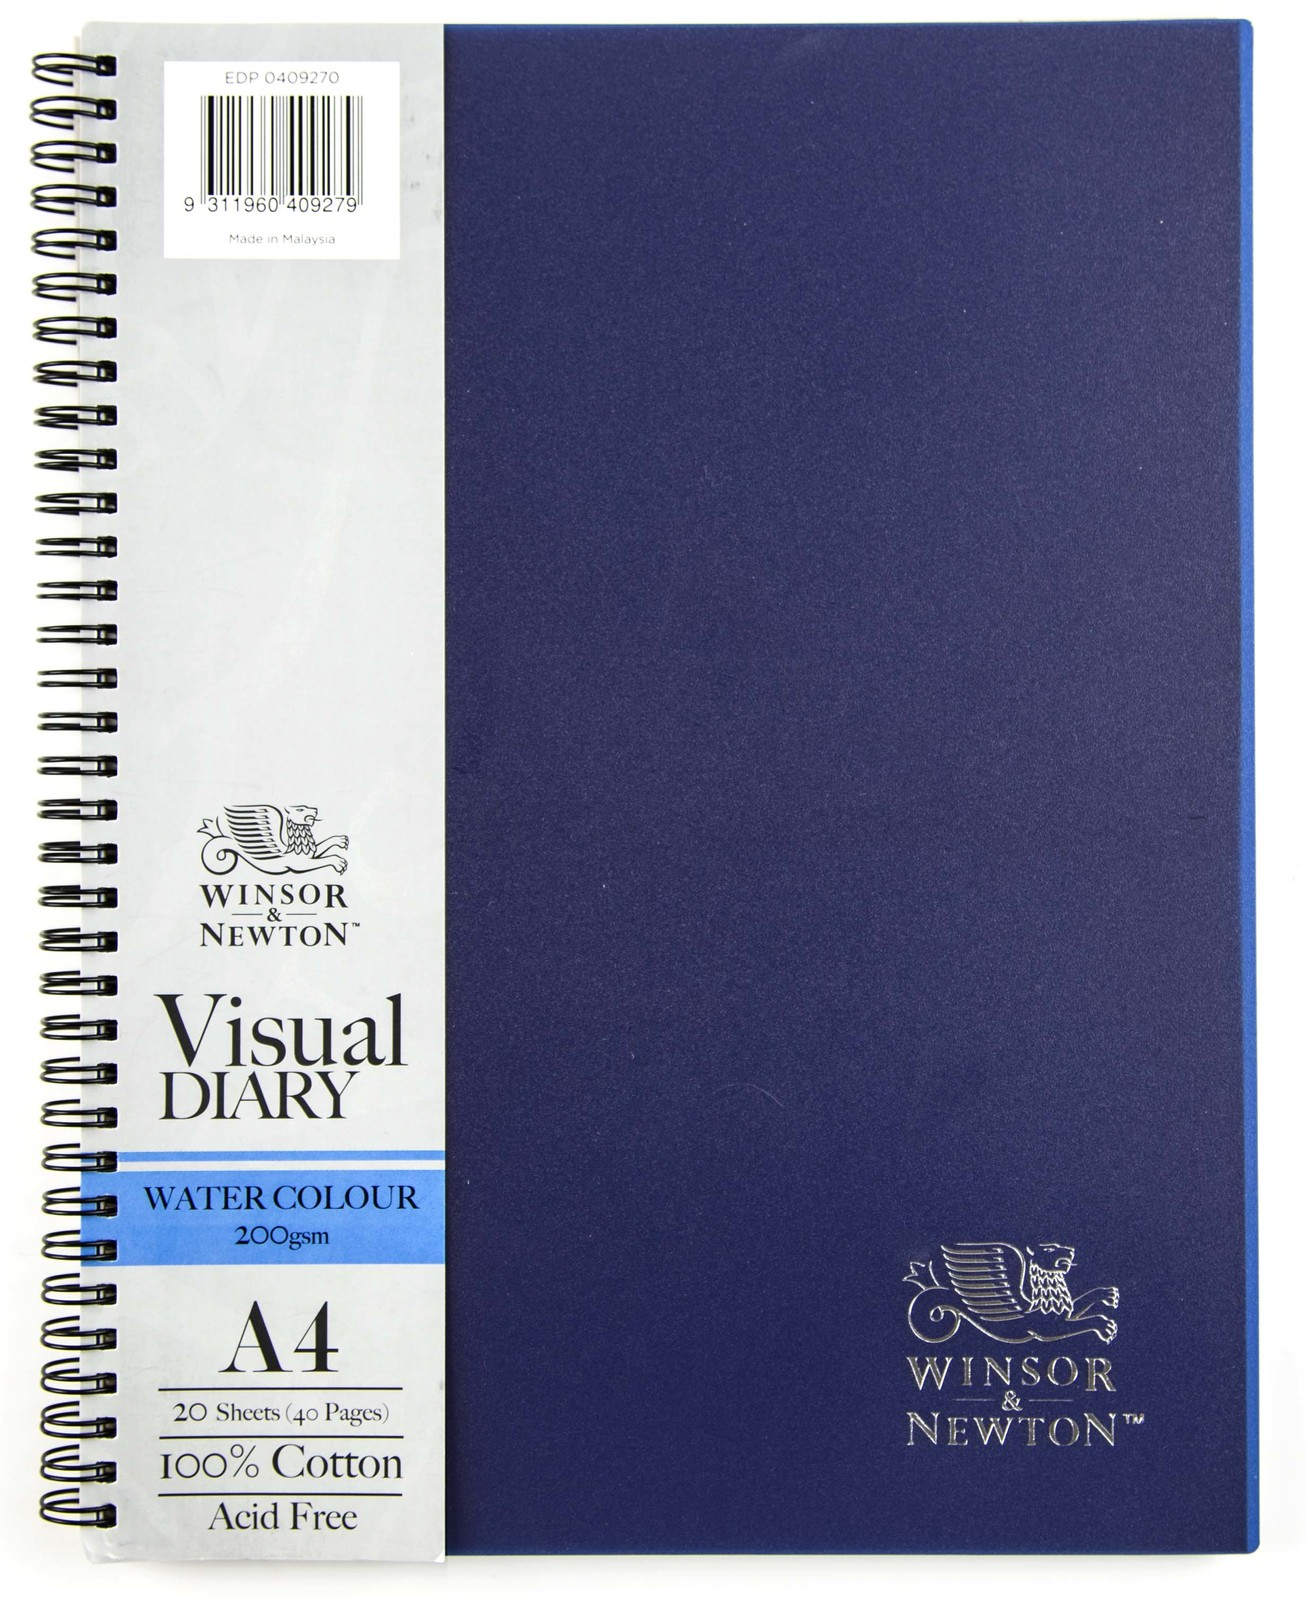 Winsor & Newton Watercolour Diary 200gsm Wiro (A4) image